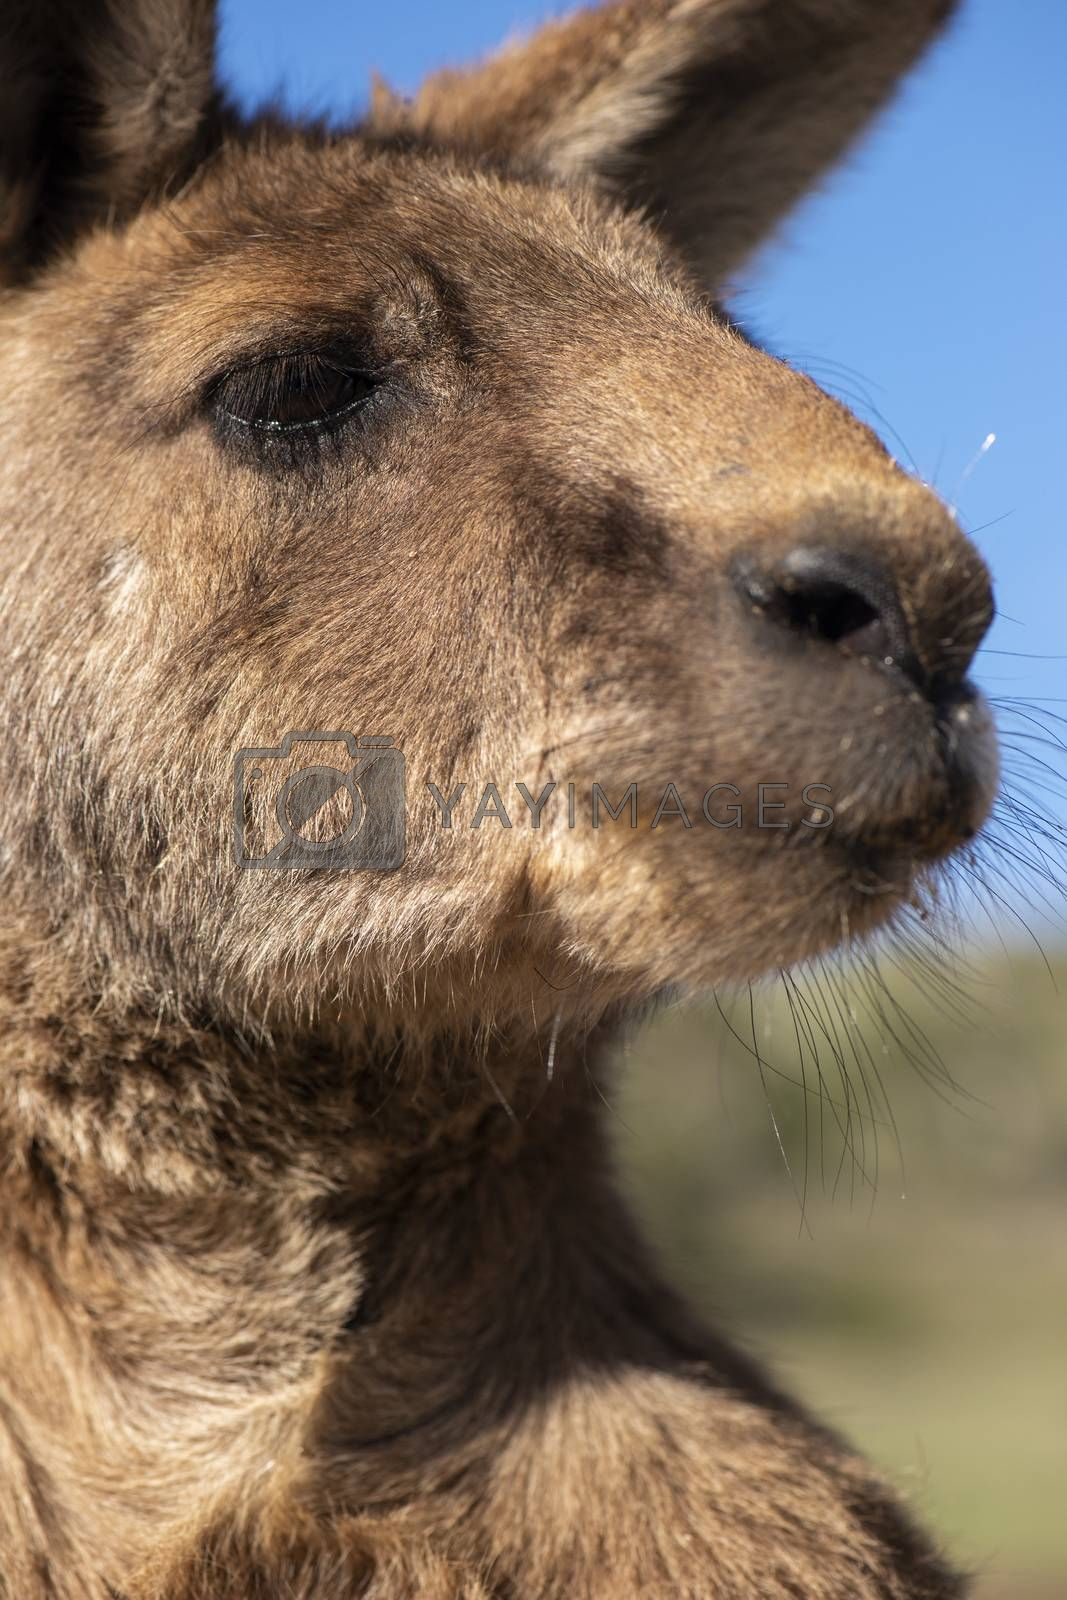 Royalty free image of Kangaroo outside during the day time. by artistrobd